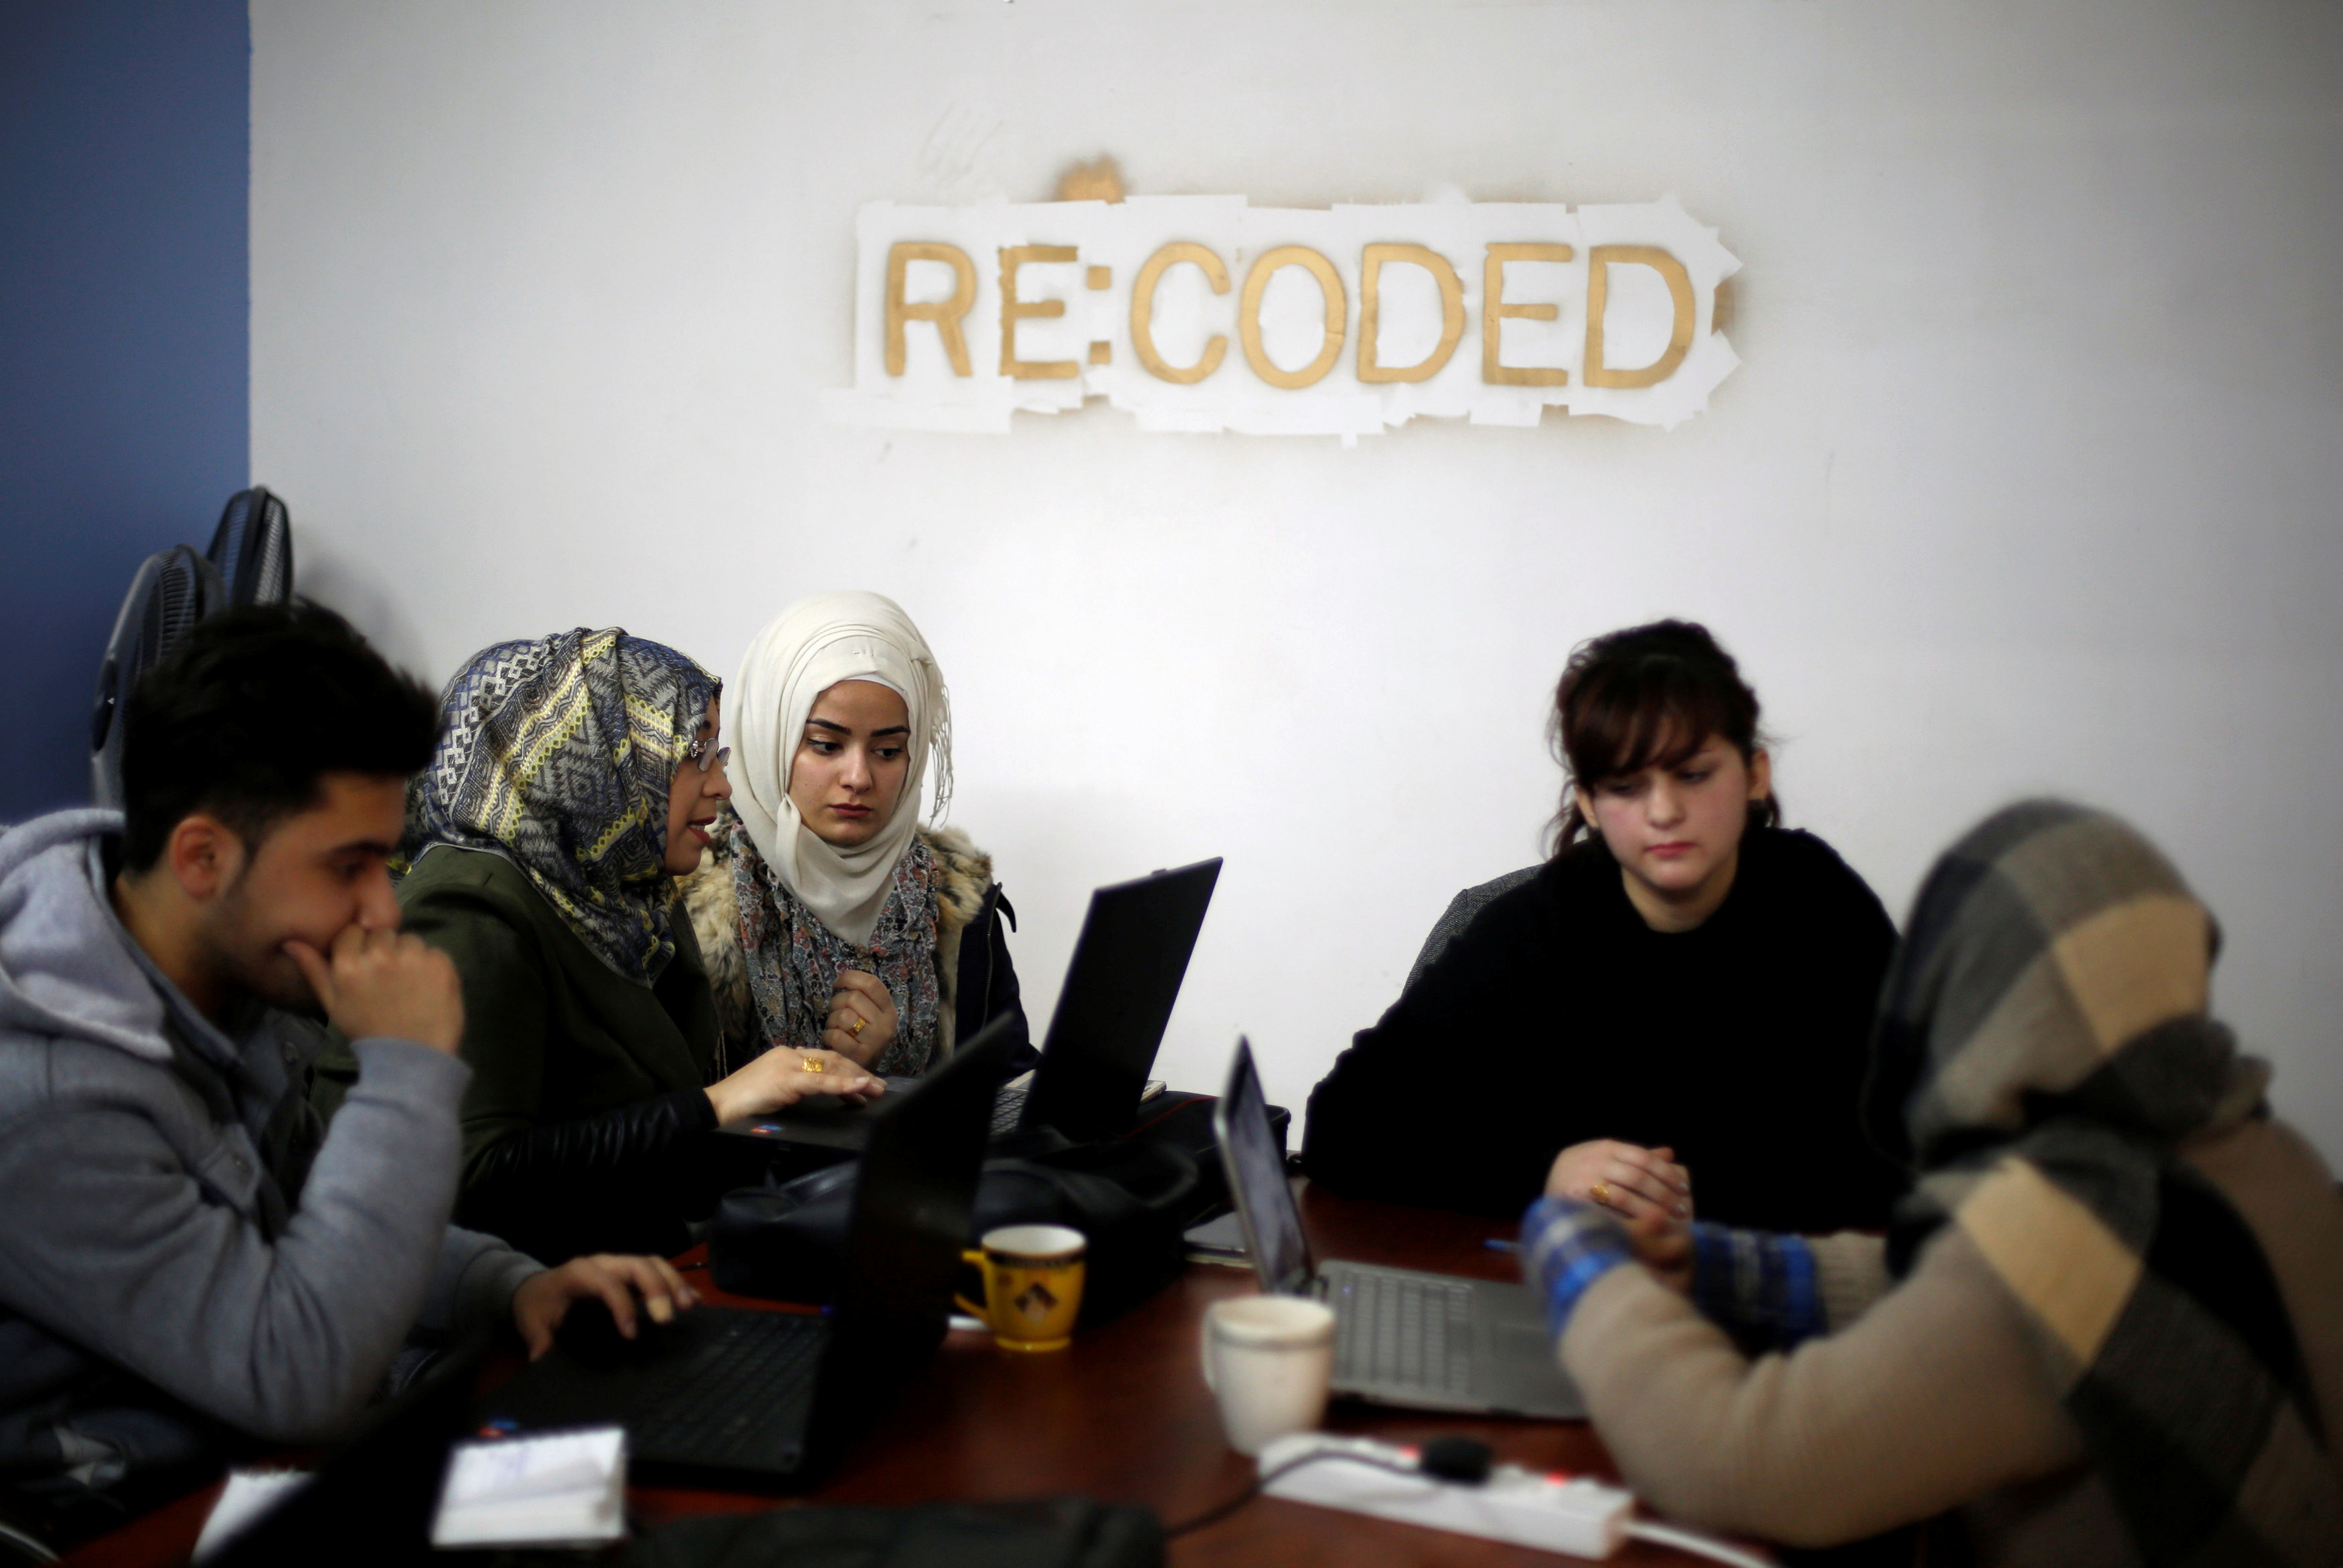 Syrian refugees and displaced Iraqis attend their class to learn basic and advanced coding skills at the Re:Coded boot camp, in Erbil, Iraq February 1, 2017. Picture taken February 1, 2017. REUTERS/Muhammad Hamed - RTX30BX8